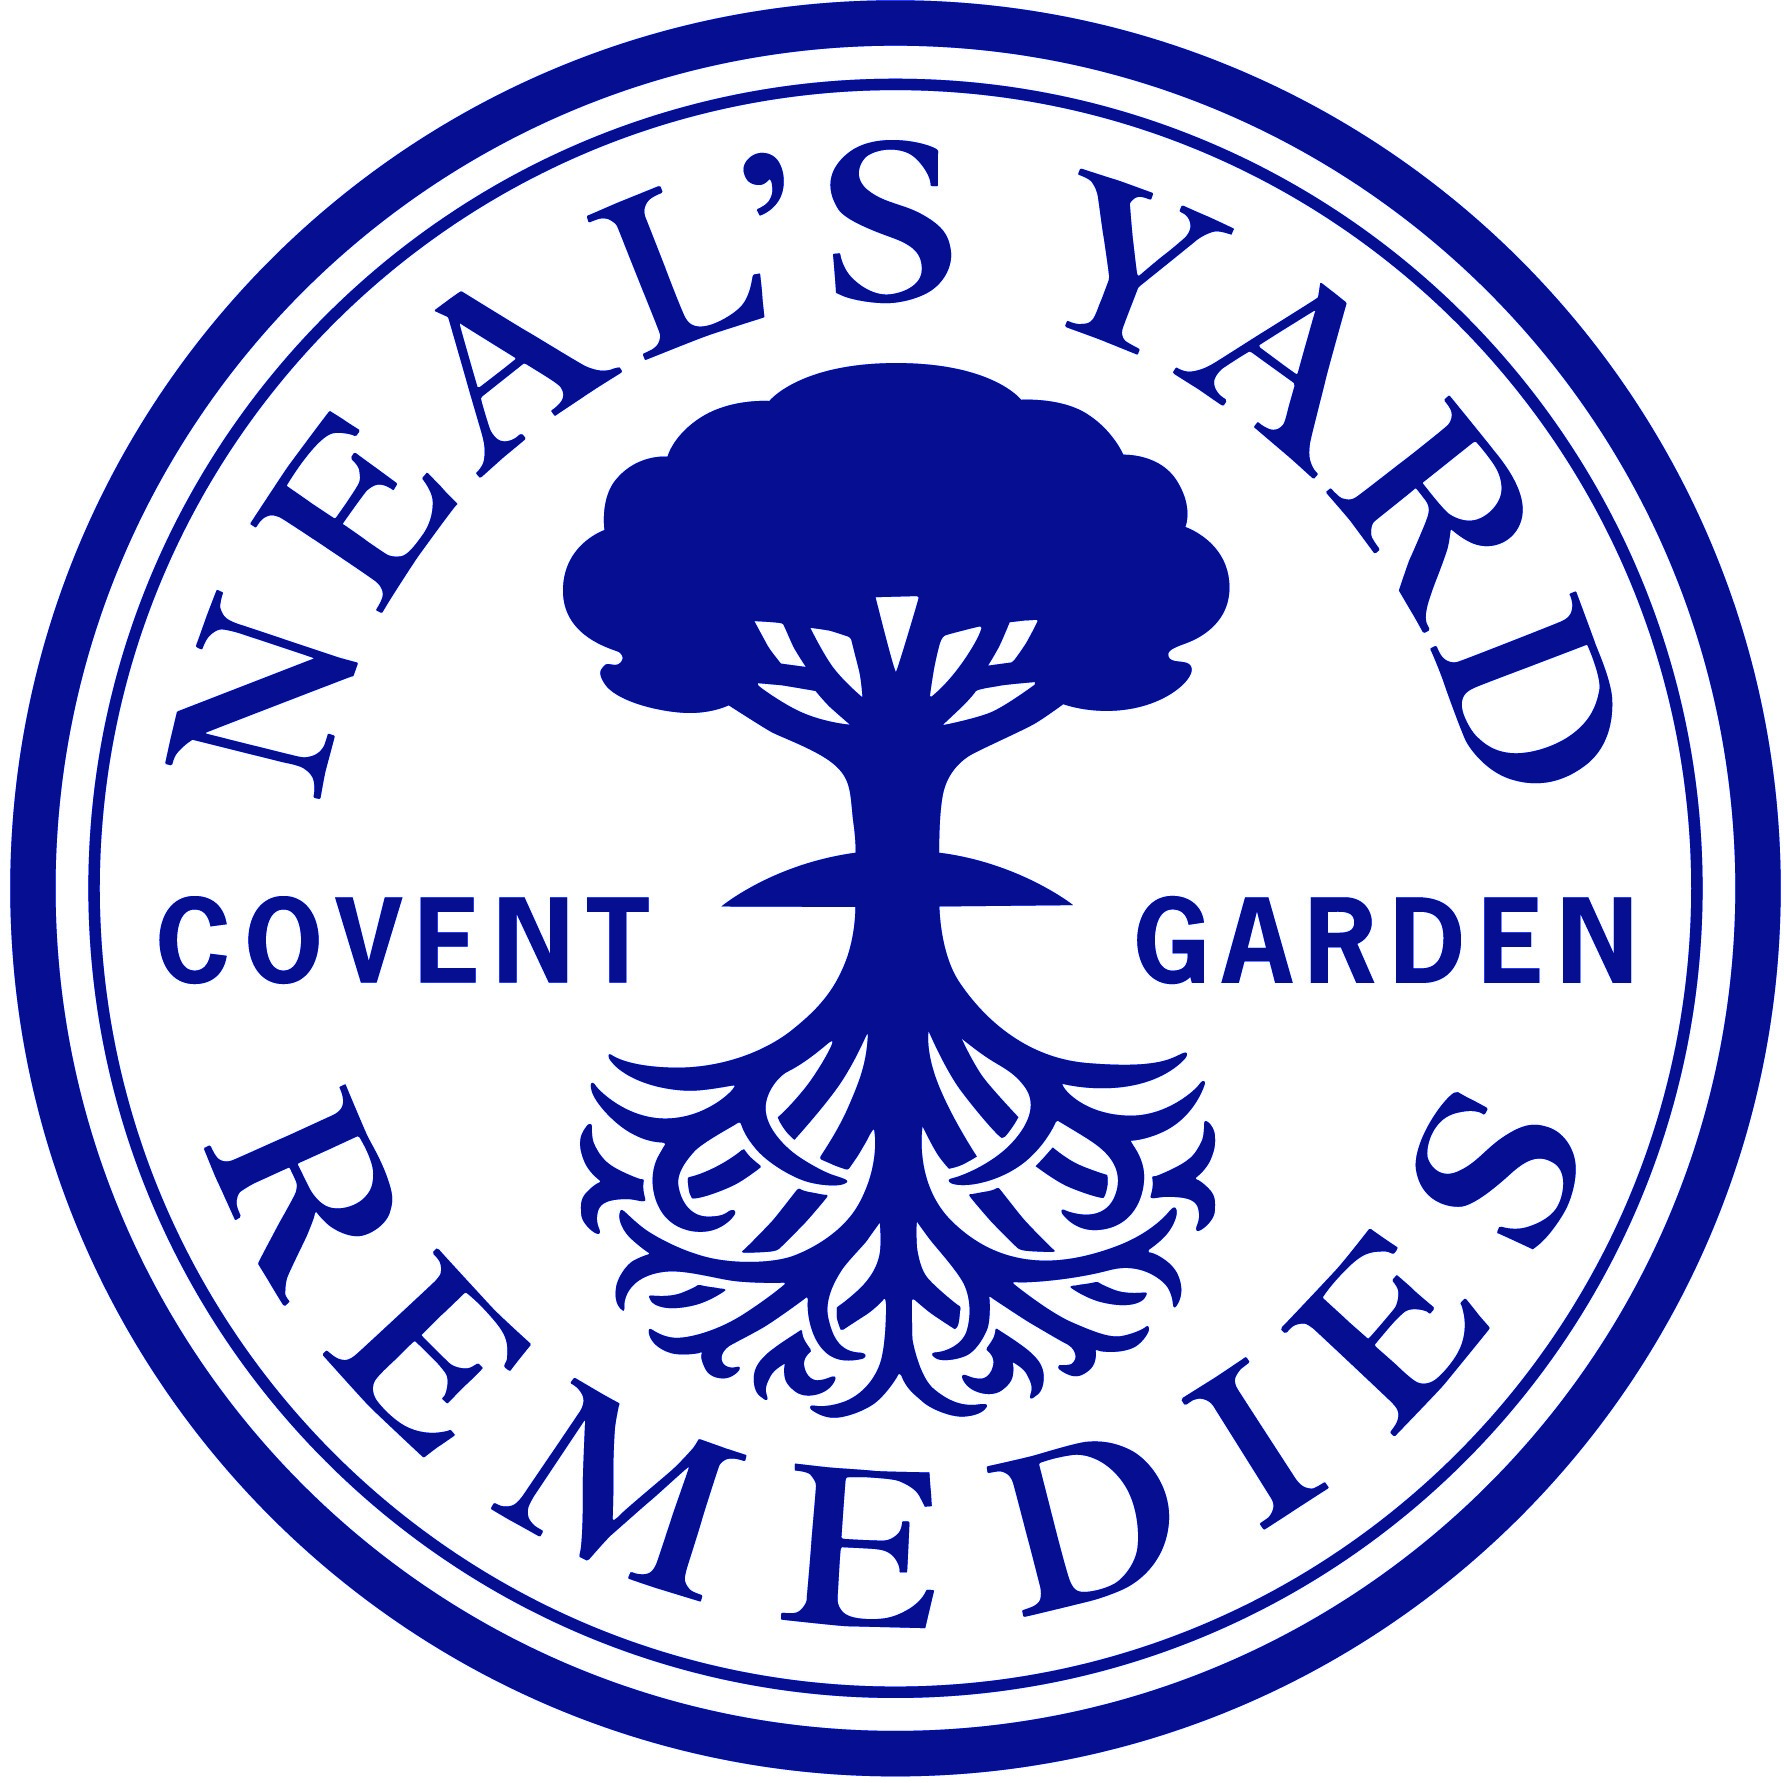 Simply Beauty Facial Treatments by Neil's Yard Facial Products